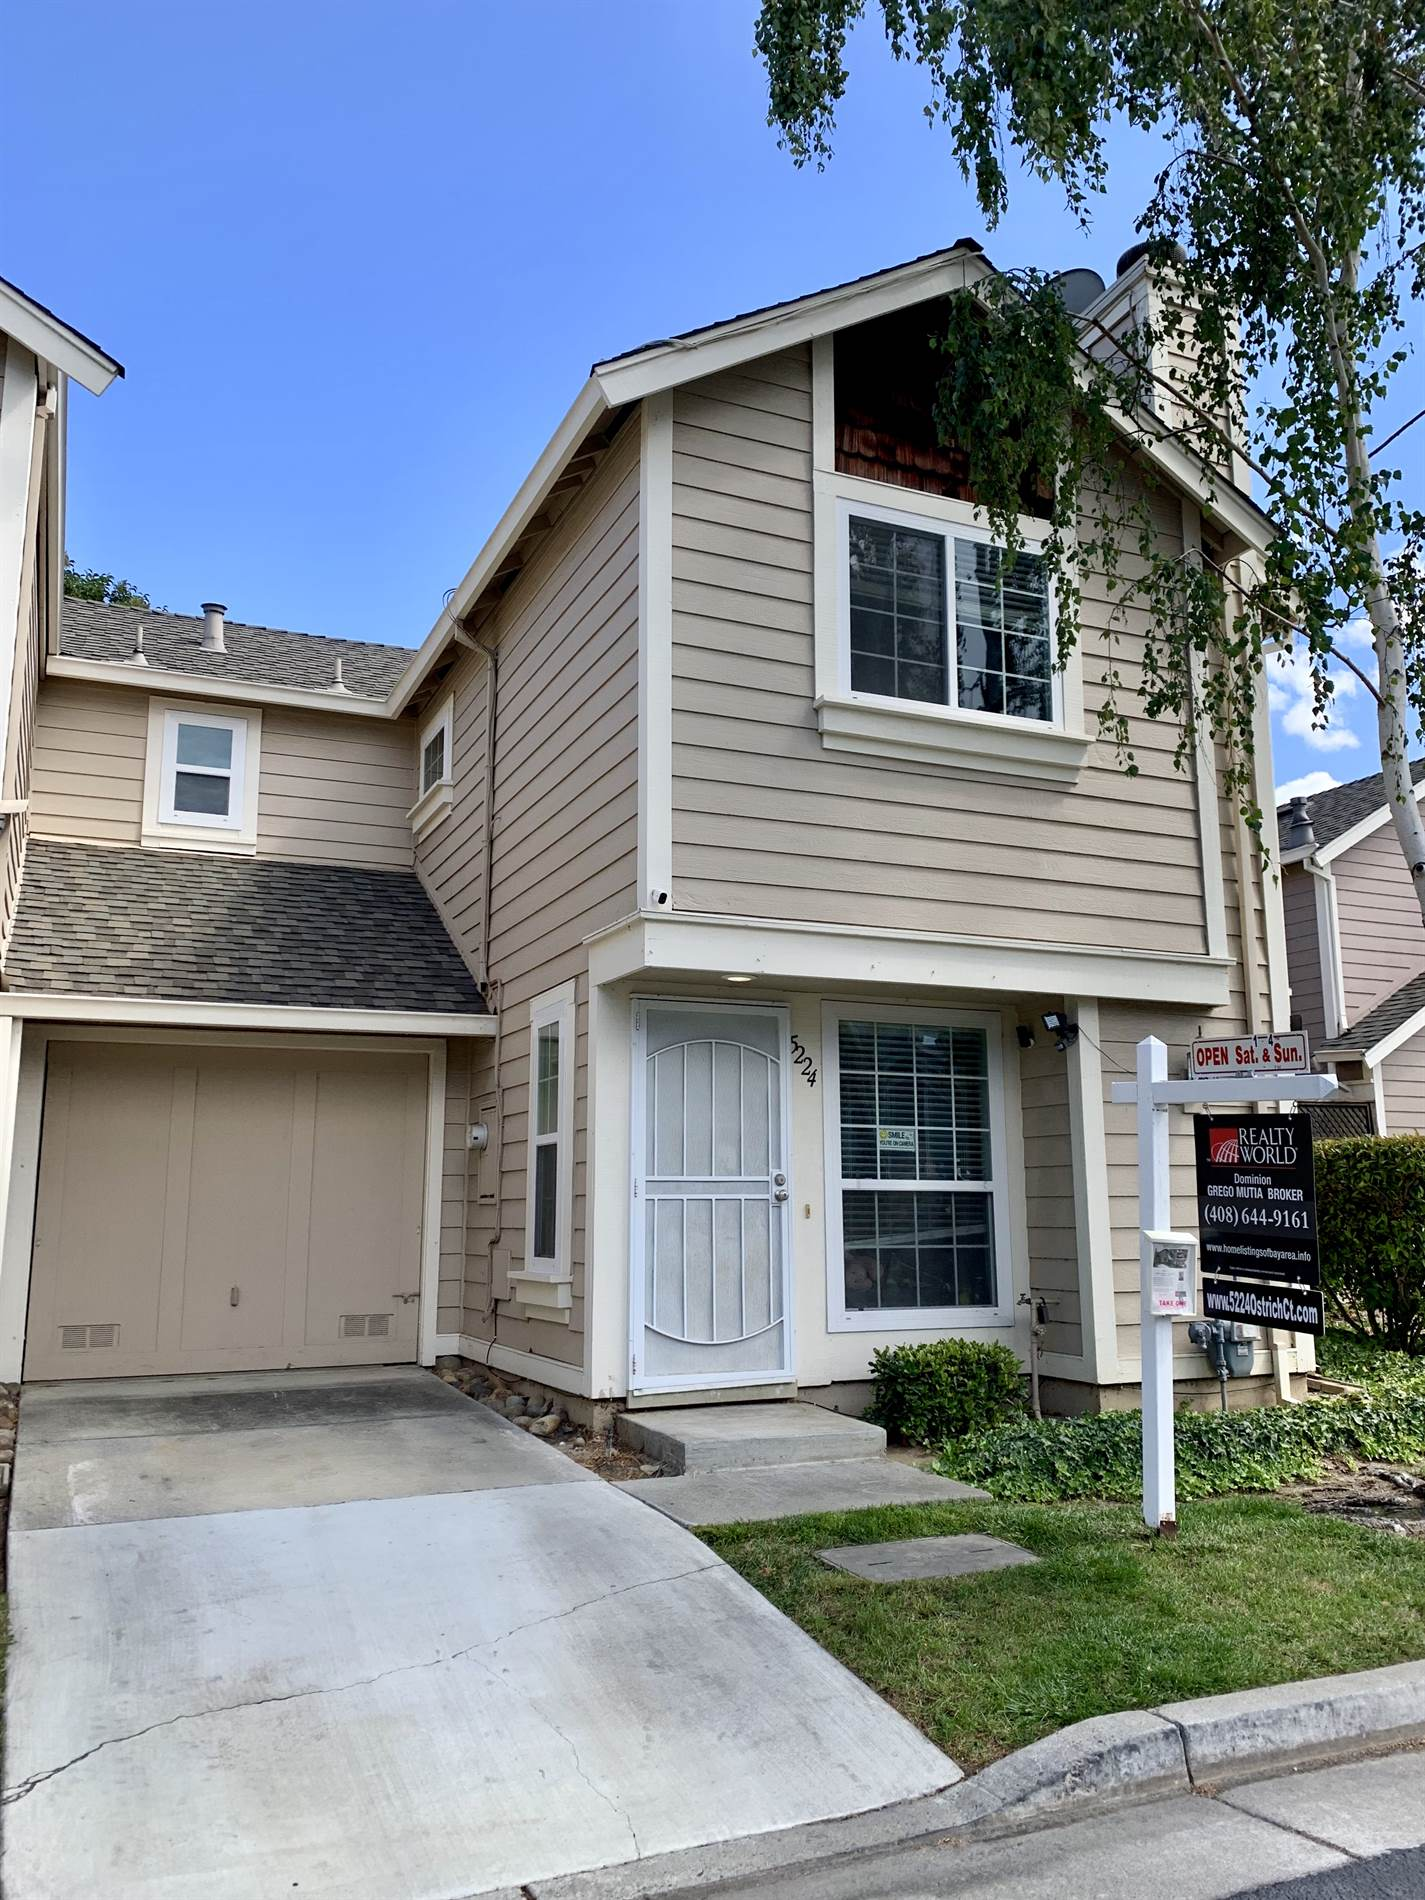 5224 Ostrich CT, Edenvale-San Jose in  County, CA 95123 Home for Sale